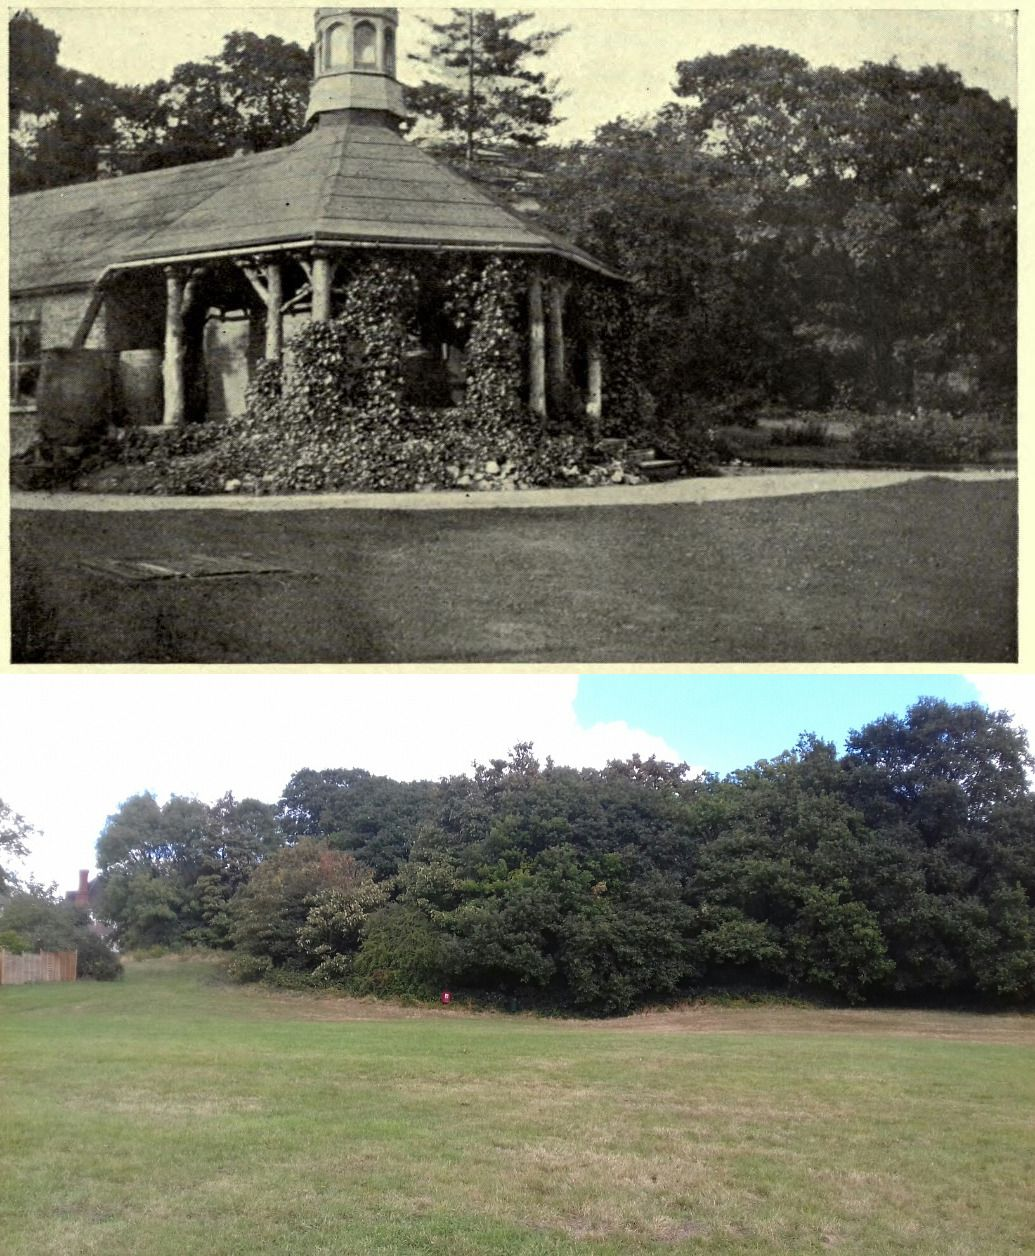 The Octagonal refreshment room Beulah Spa then and now